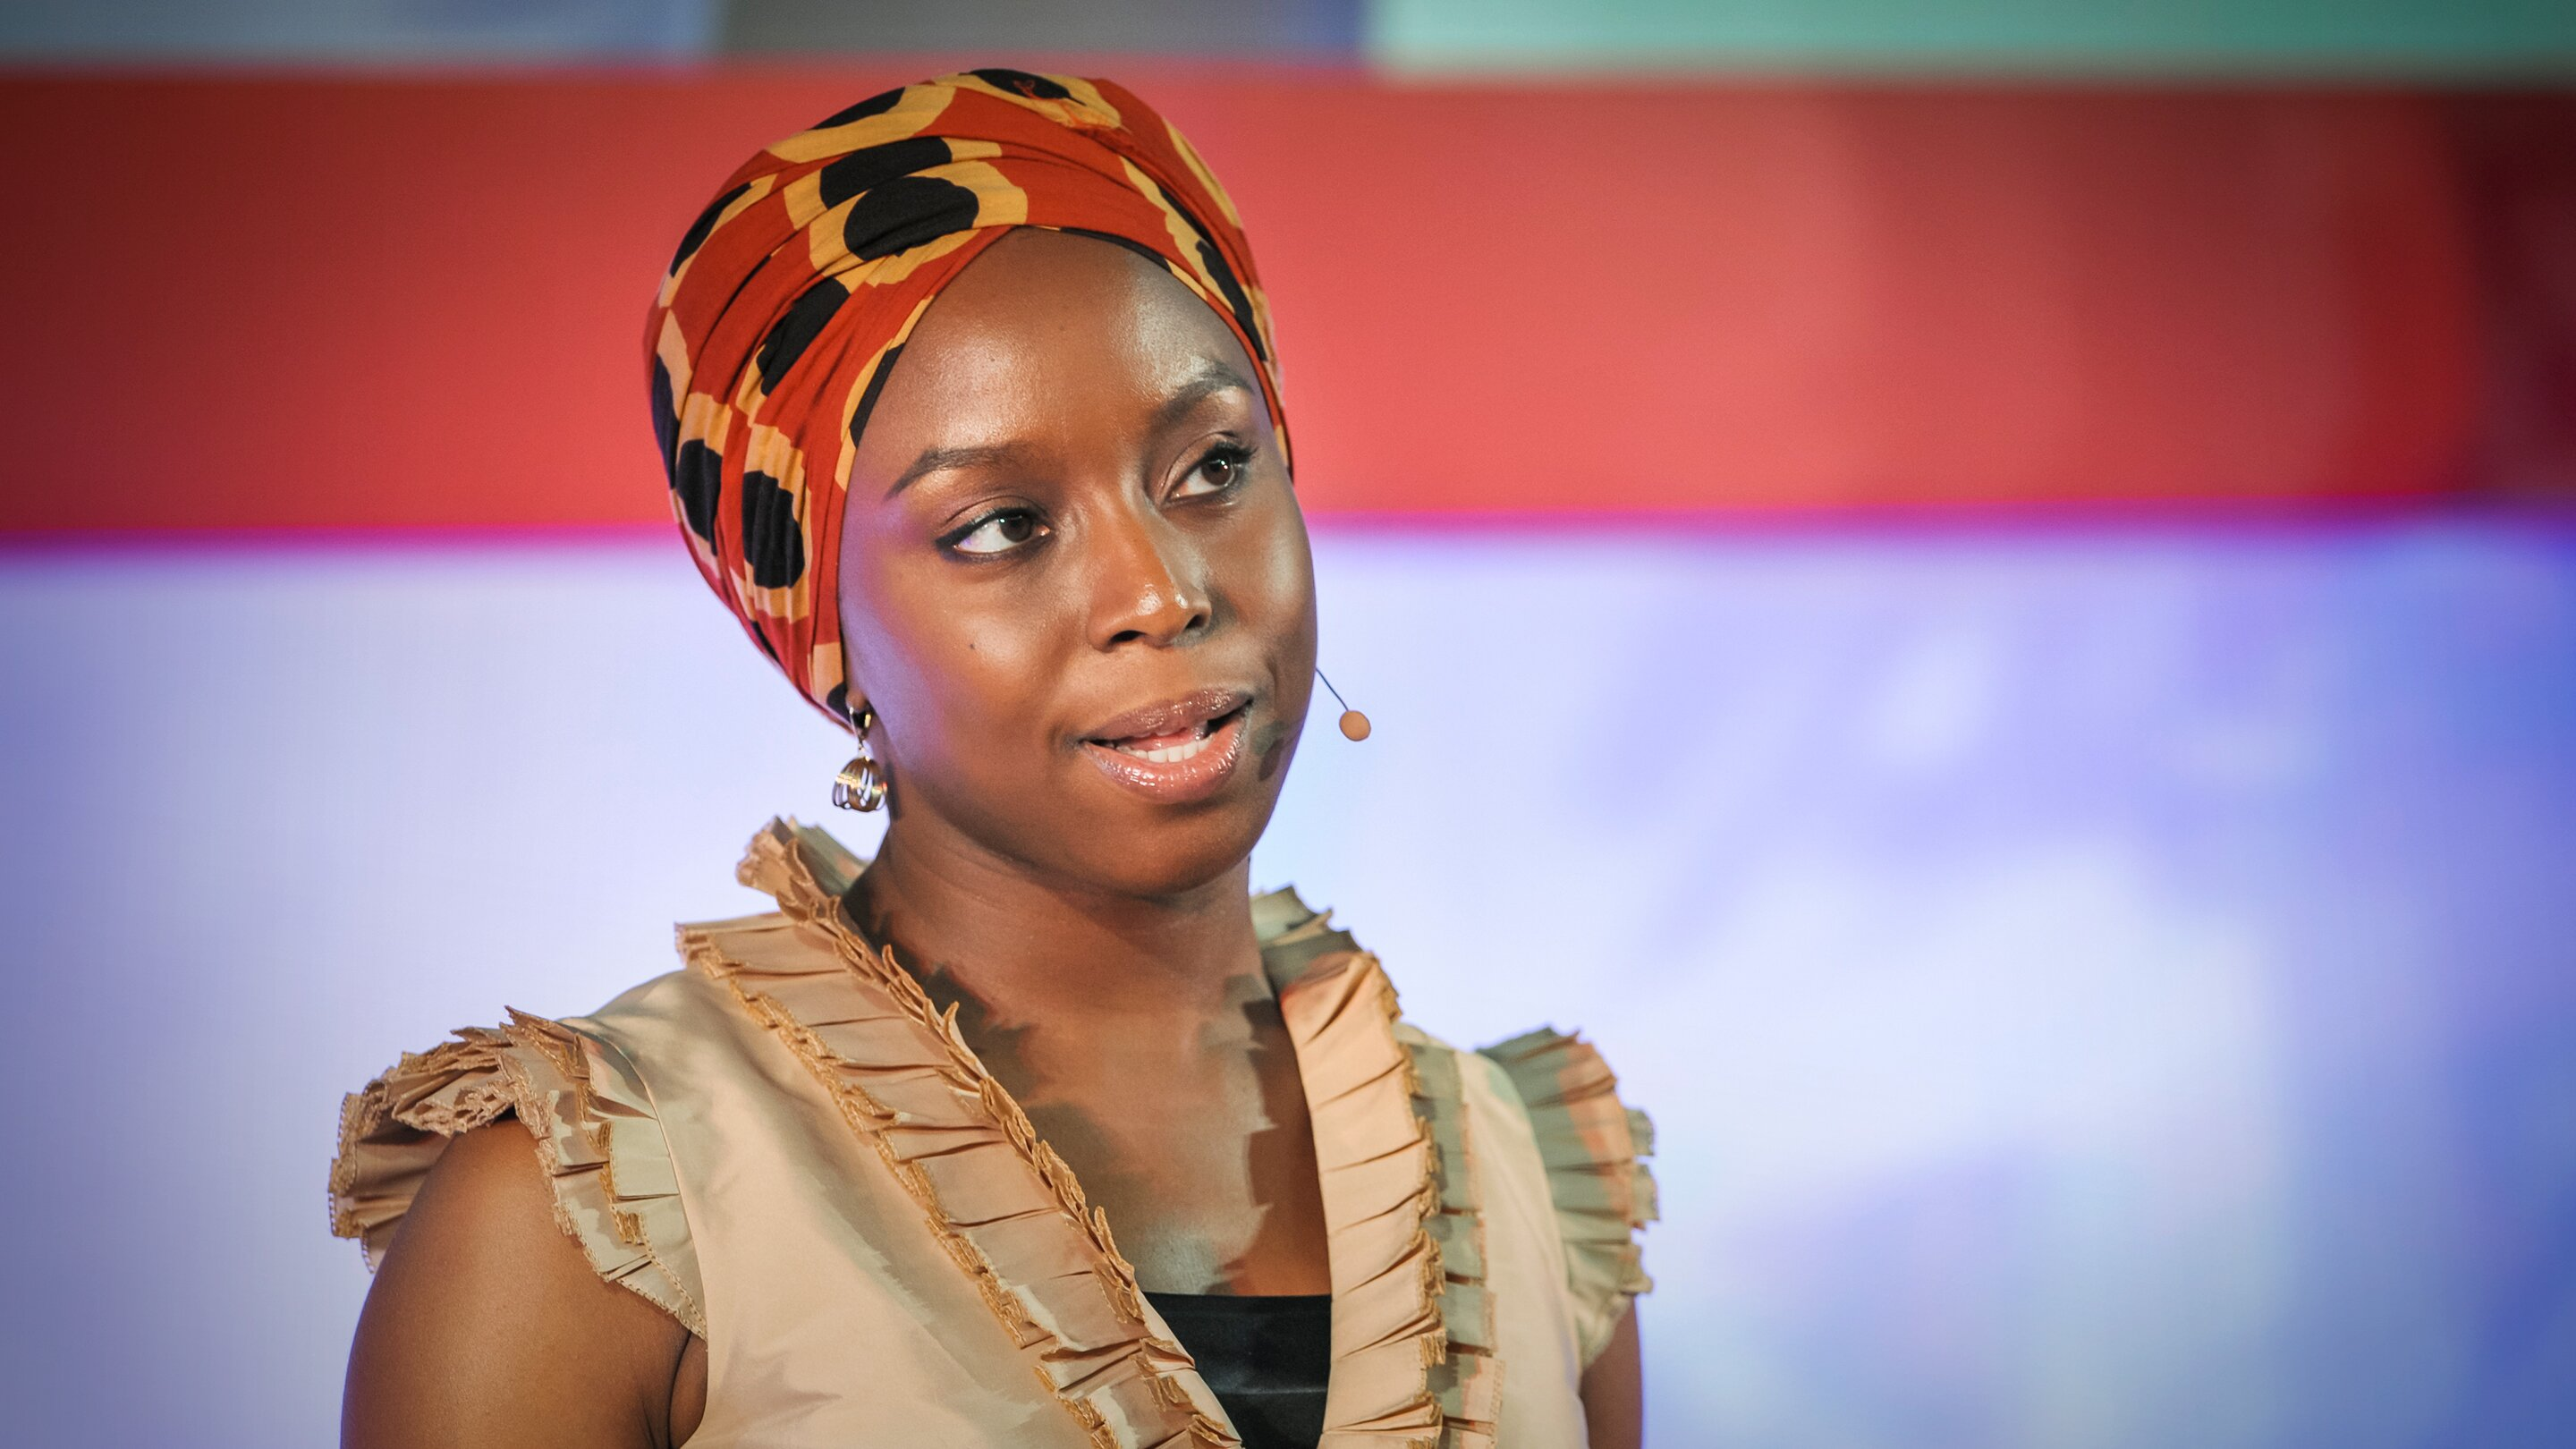 Chimamanda Adichie is such an important African figure